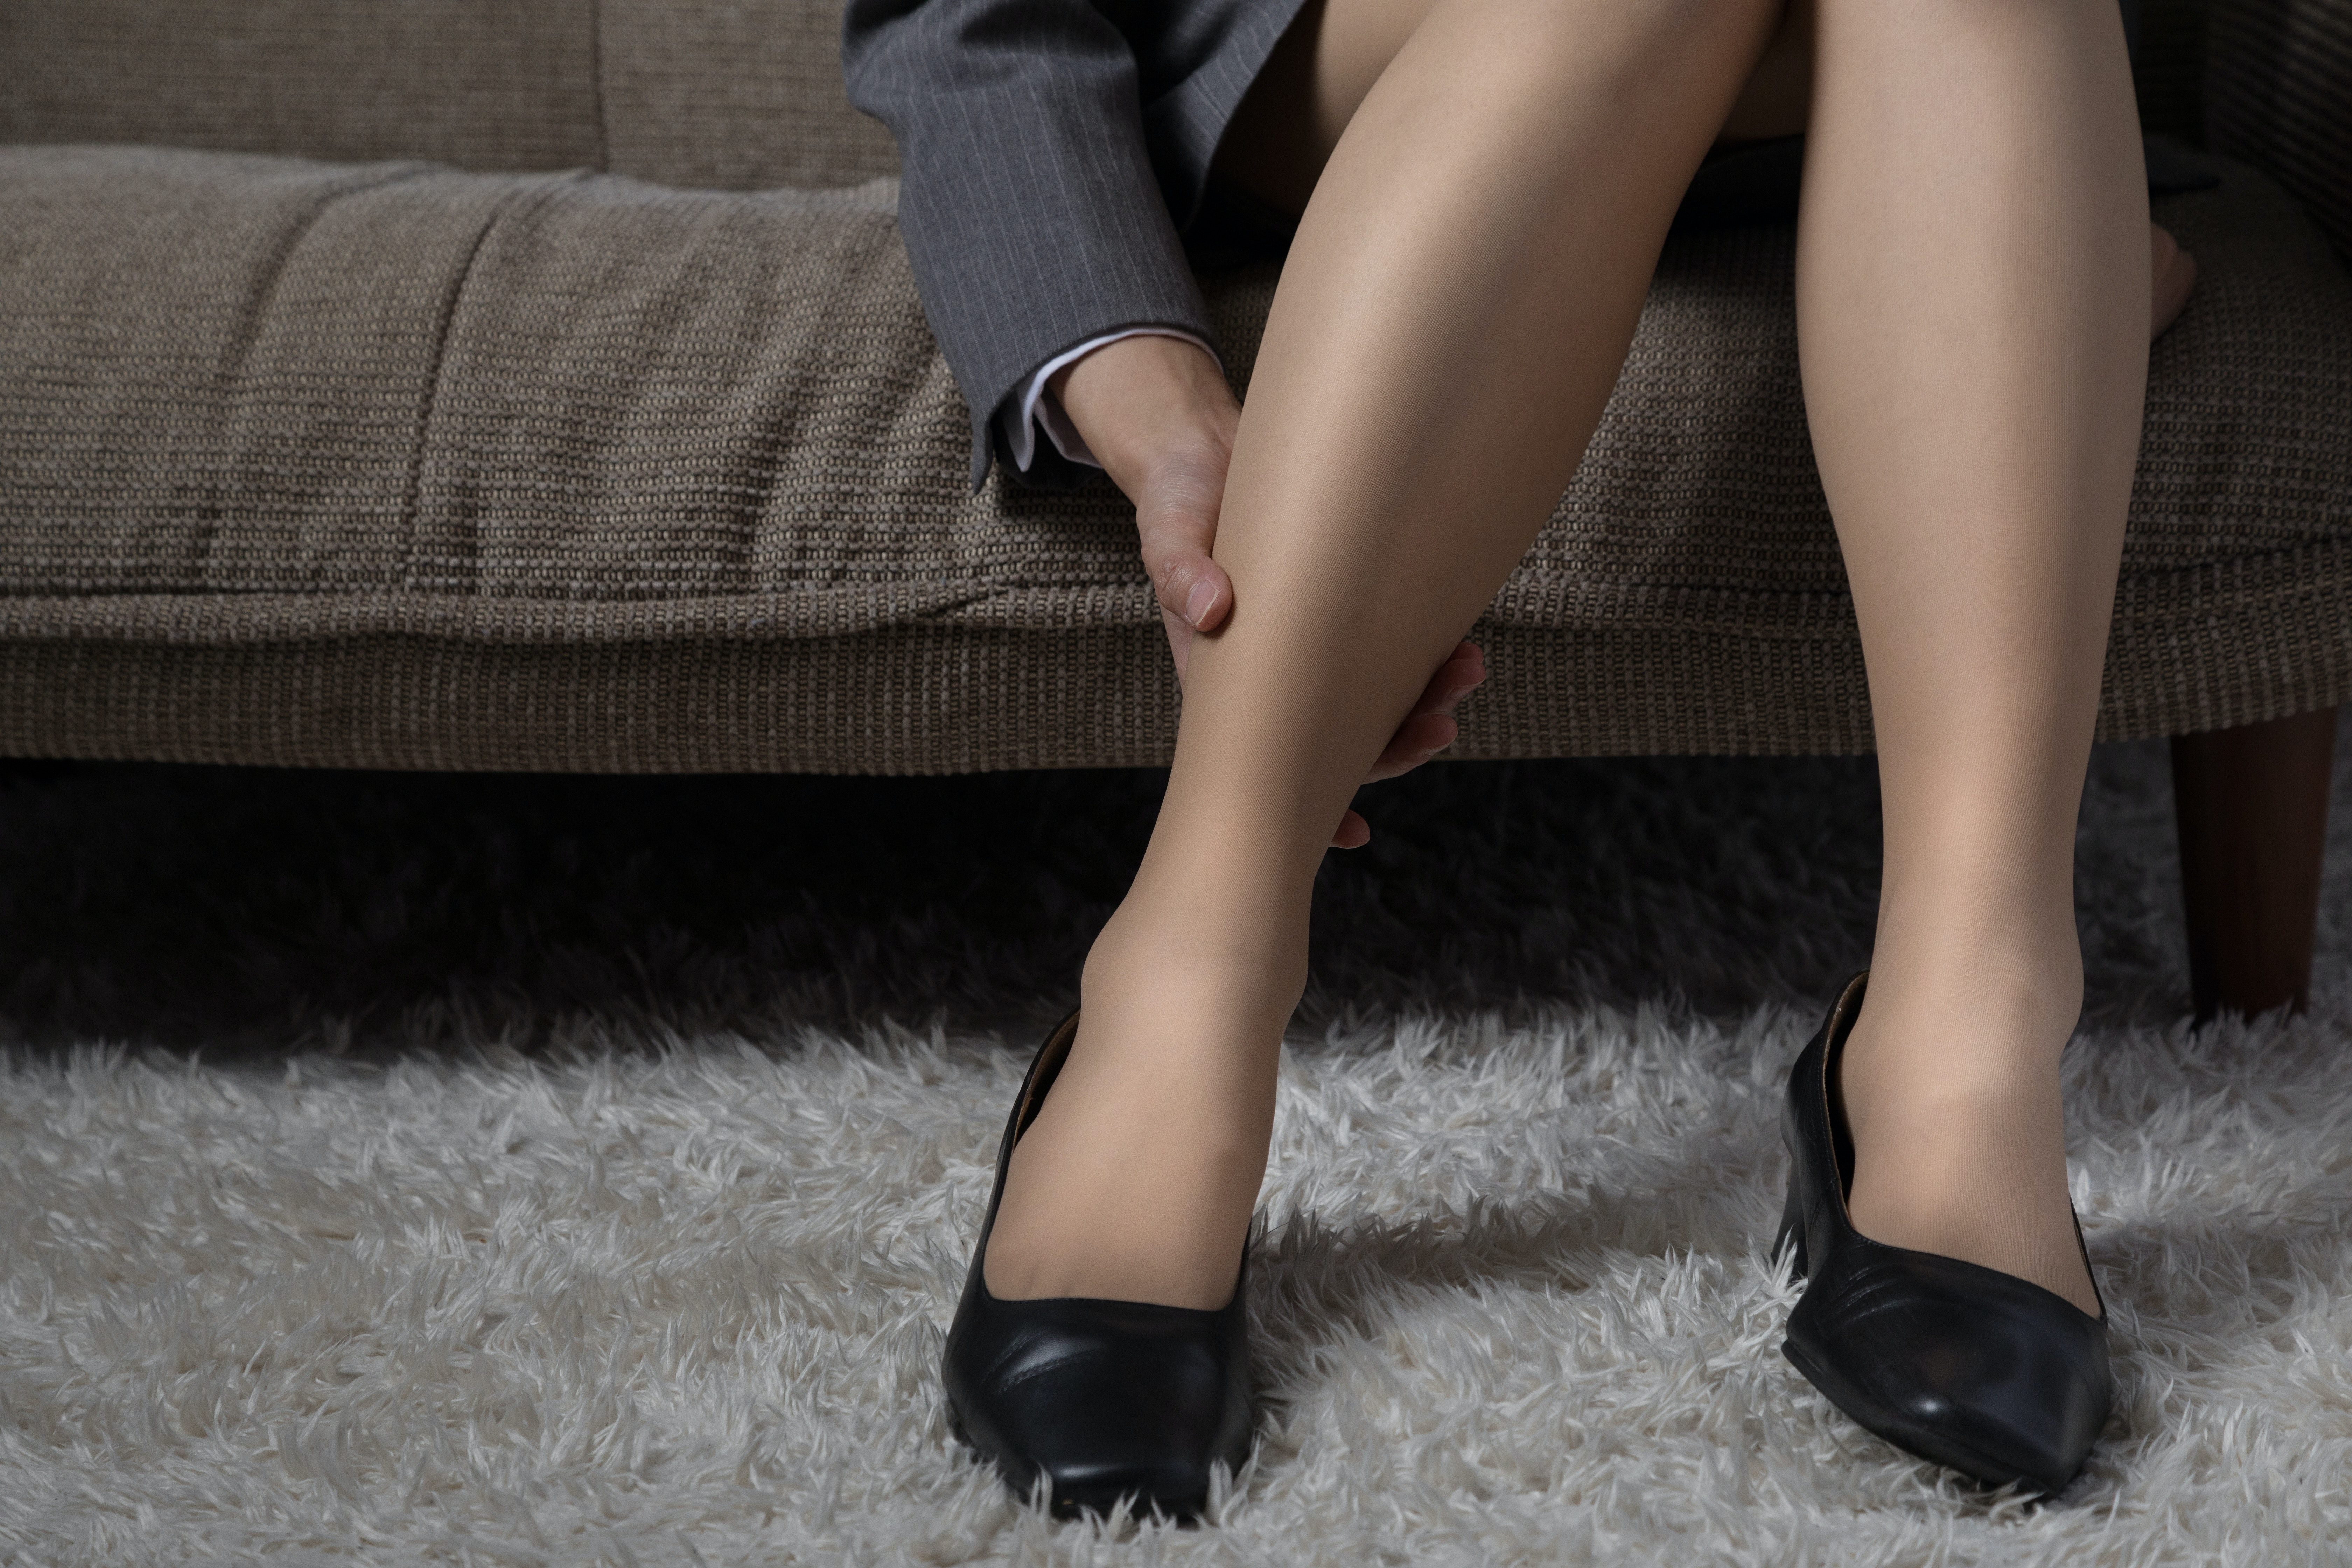 An image depicting a person suffering from swelling on the lower leg symptoms